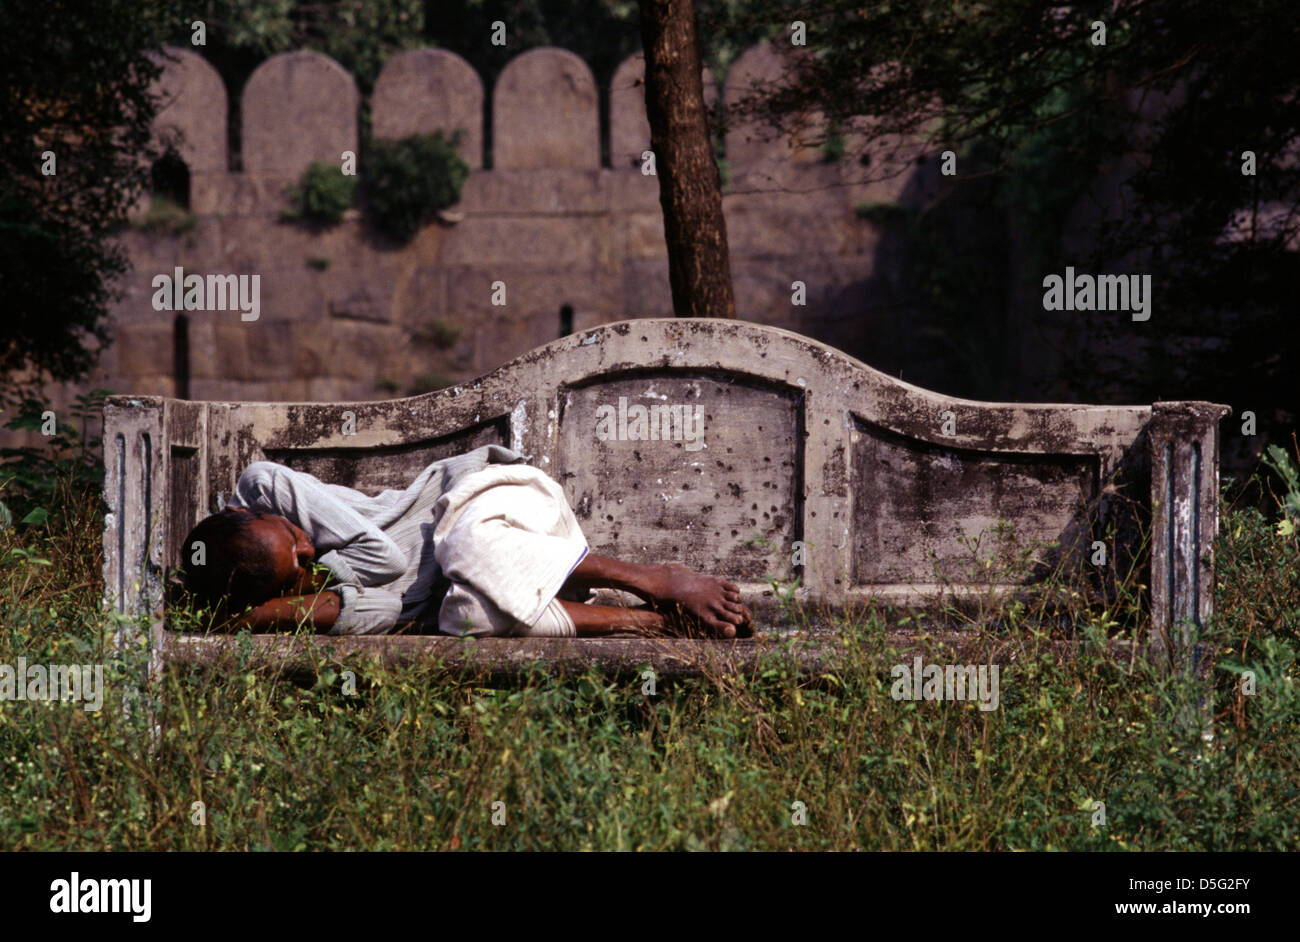 Homeless person sleeping outdoor in Velore India - Stock Image